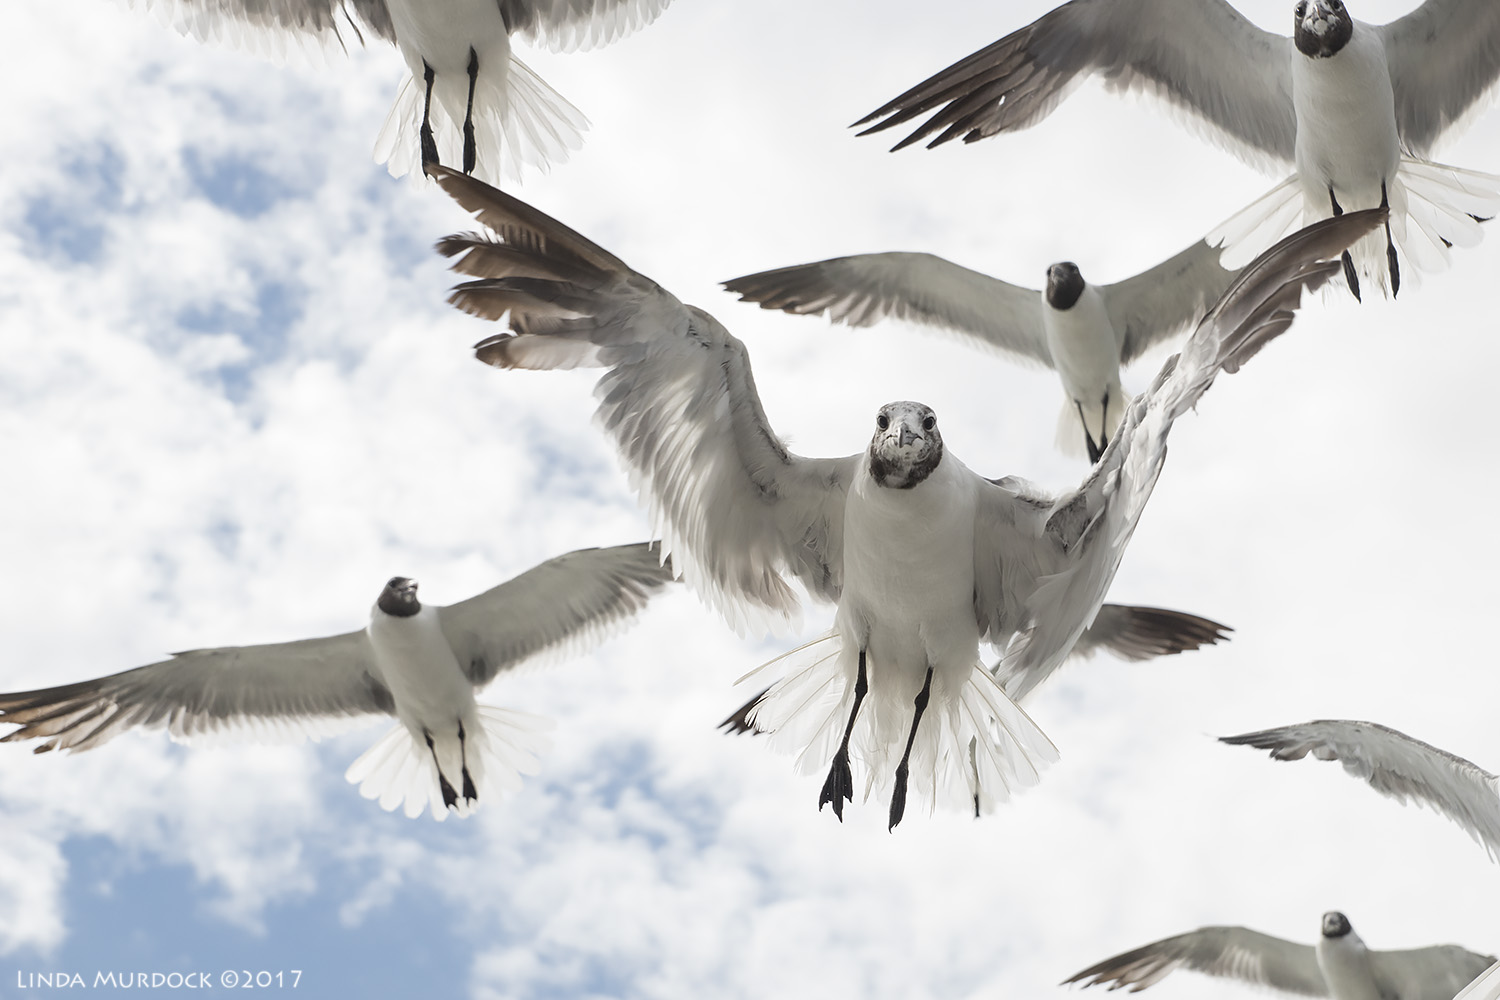 Laughing Gulls are always hungry Sony A77II with DT 16-50mm 1/2000 sec f/6.3 ISO 800; hand-held